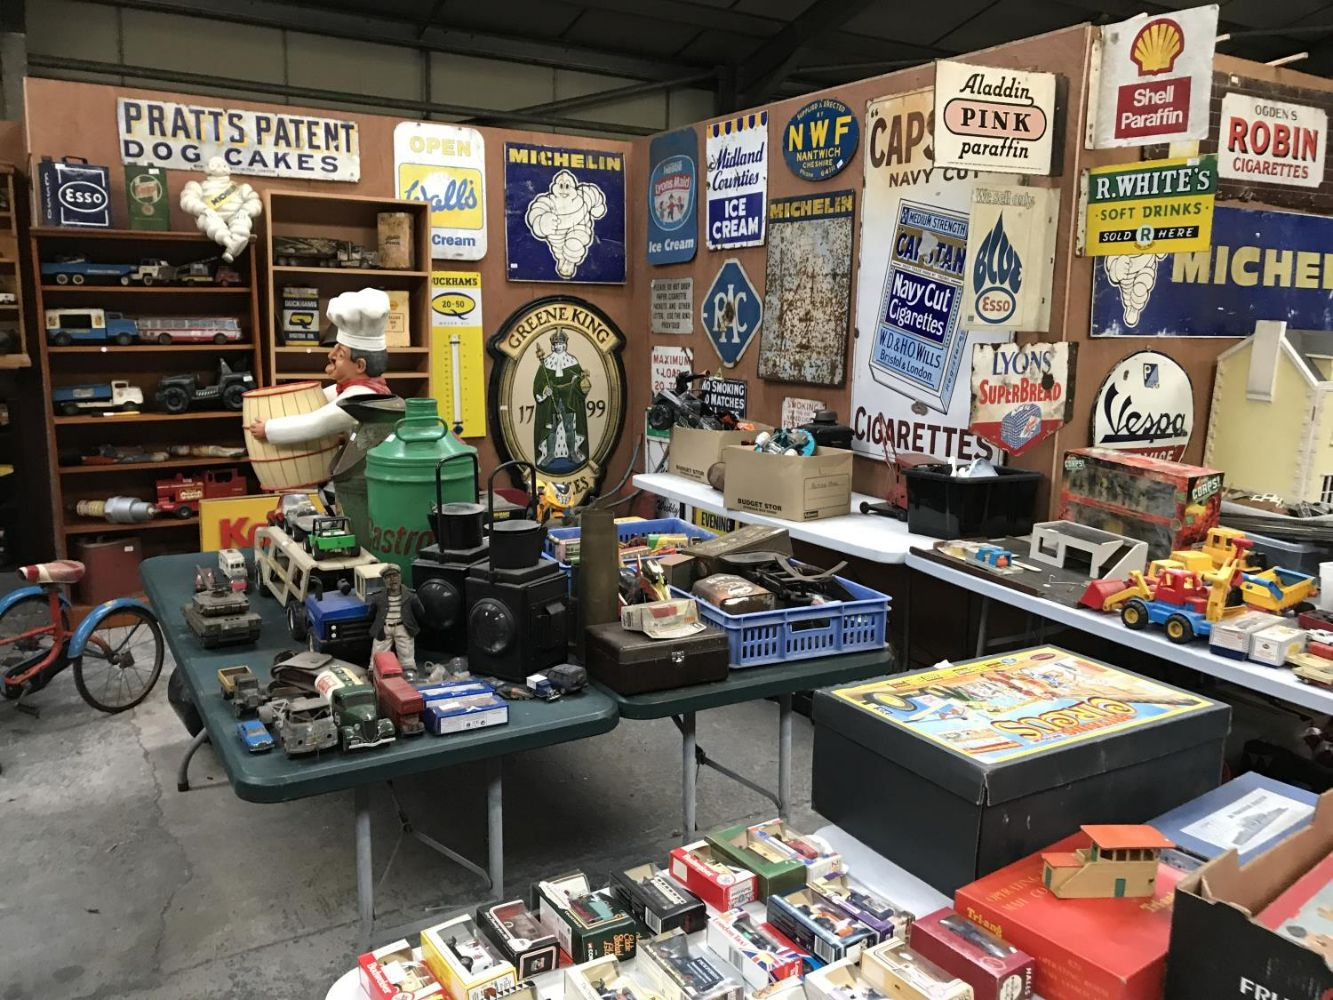 Two Day Auction Of Collectables, Antiques, Furniture, Vintage Items - with a special section for Wines and Spirits